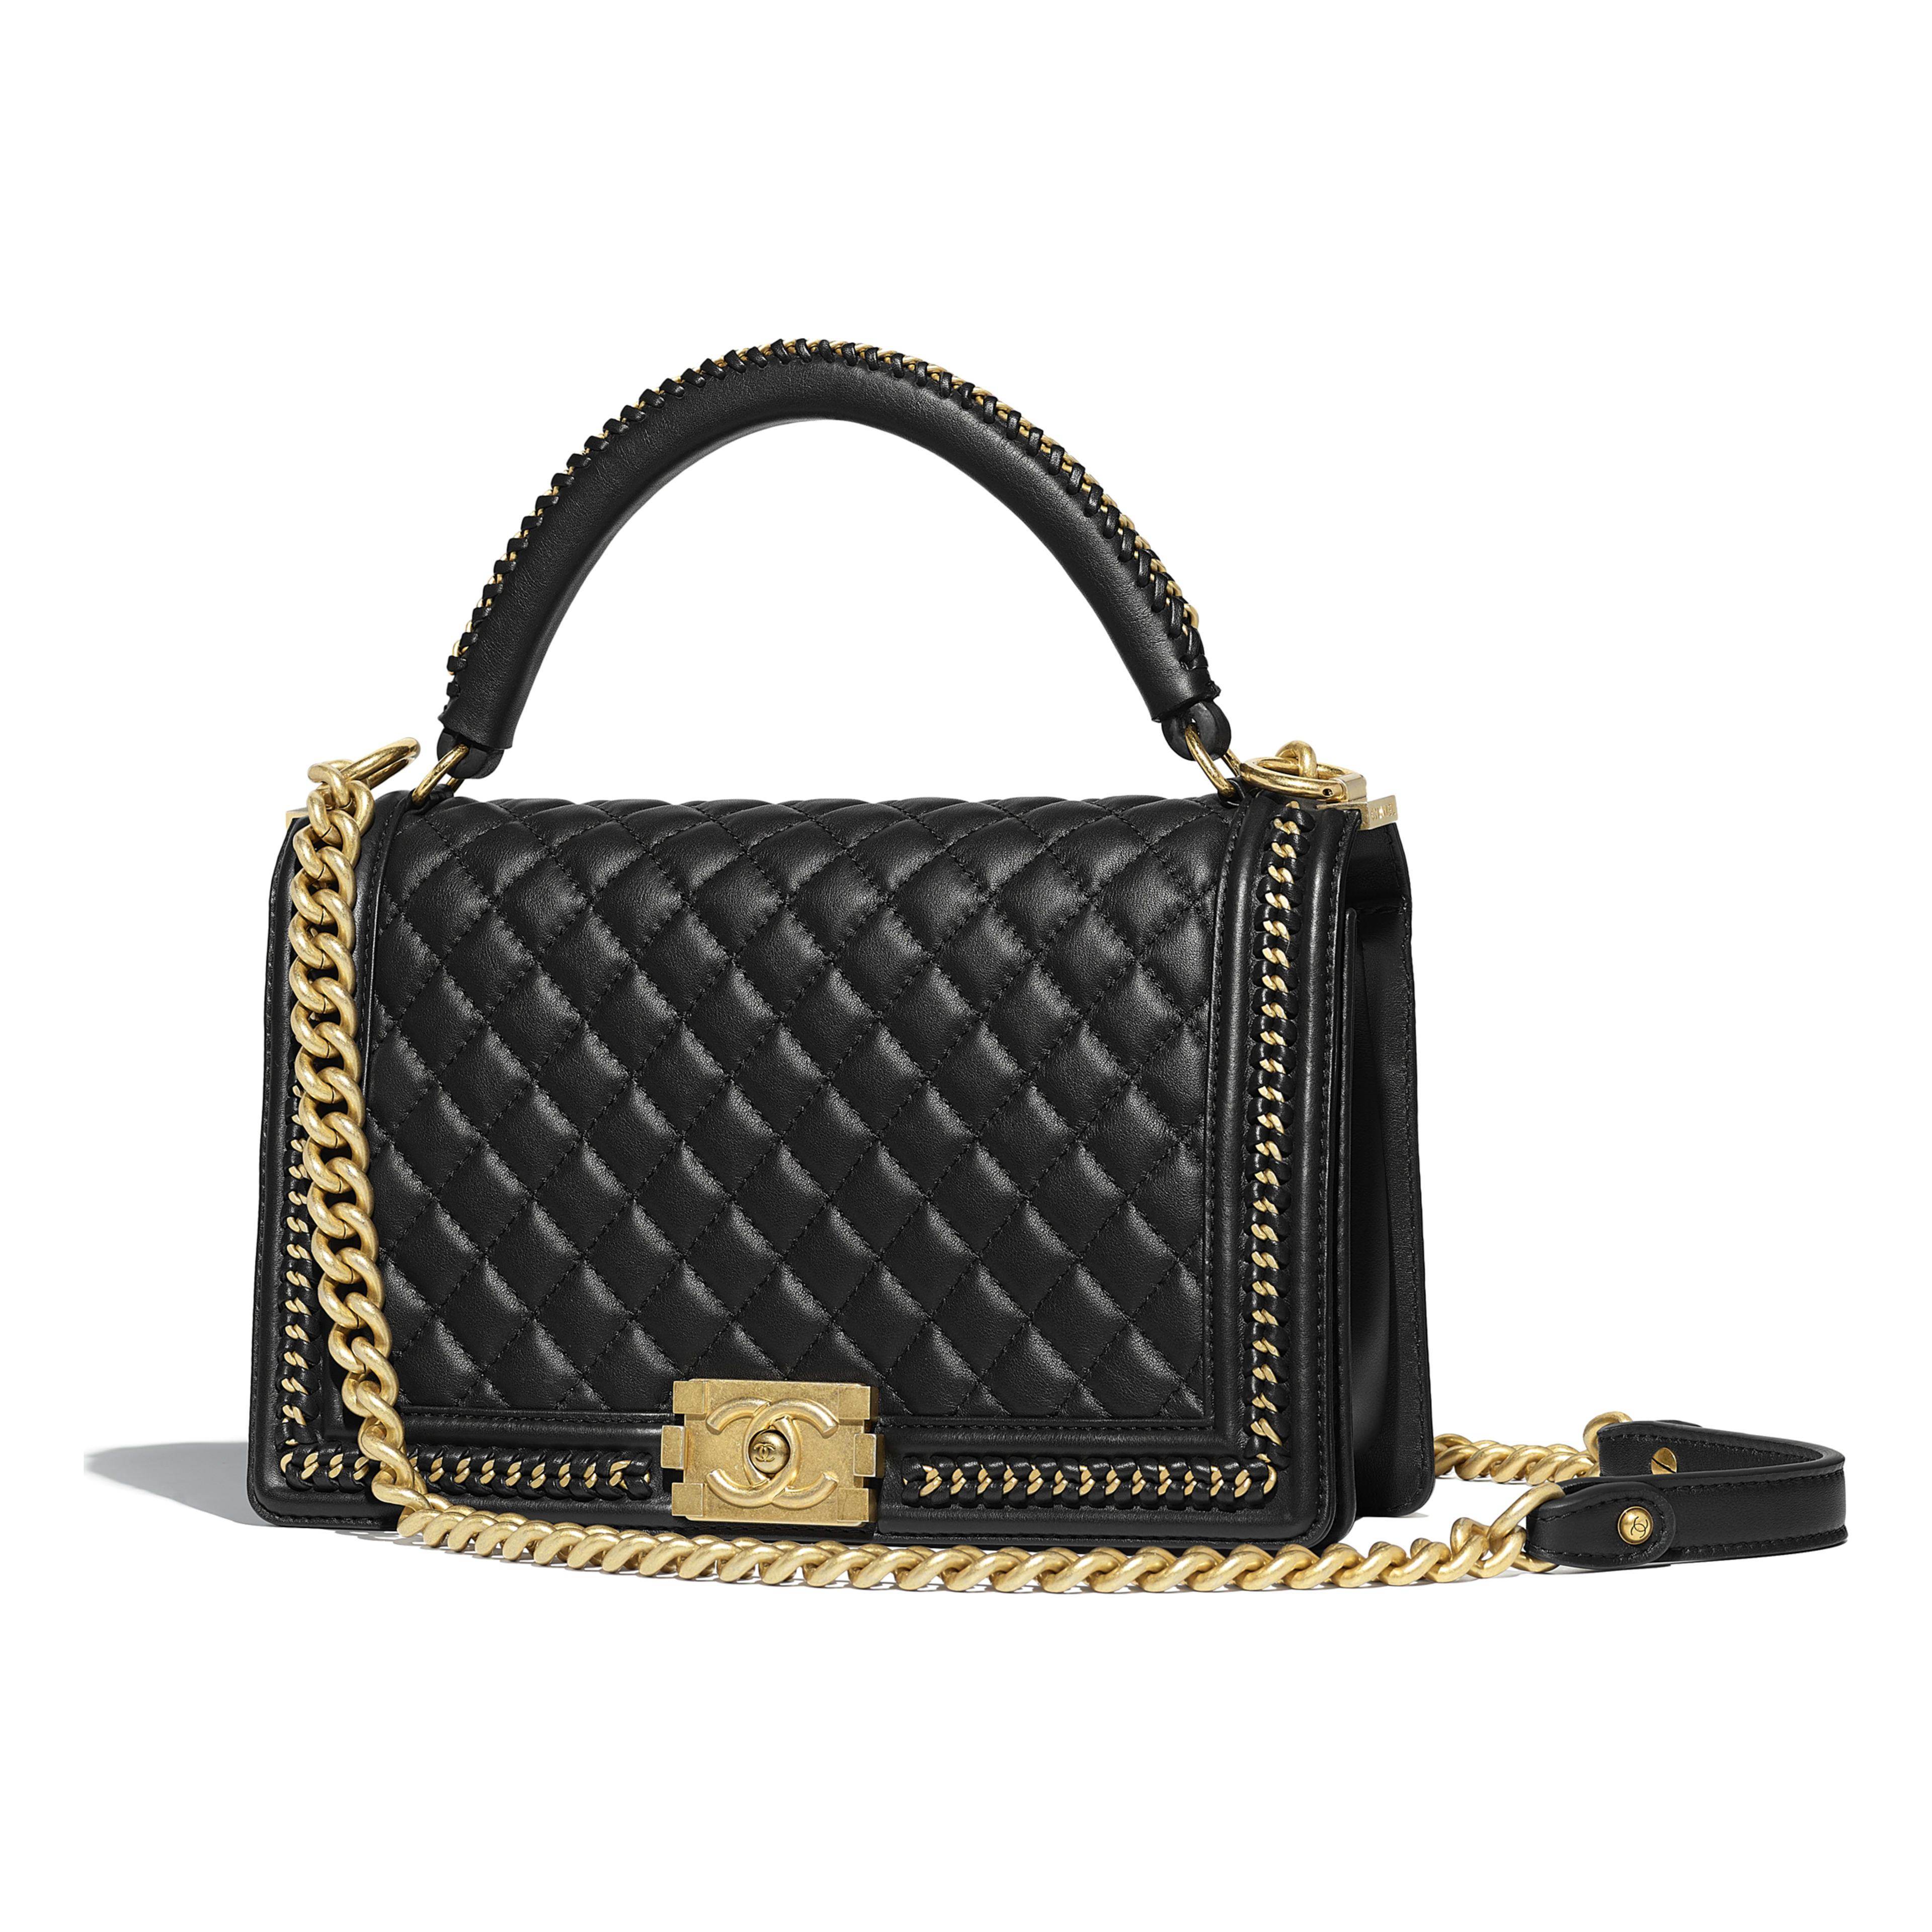 b1ca2ce0648c Calfskin & Gold-Tone Metal Black BOY CHANEL Flap Bag with Handle | CHANEL